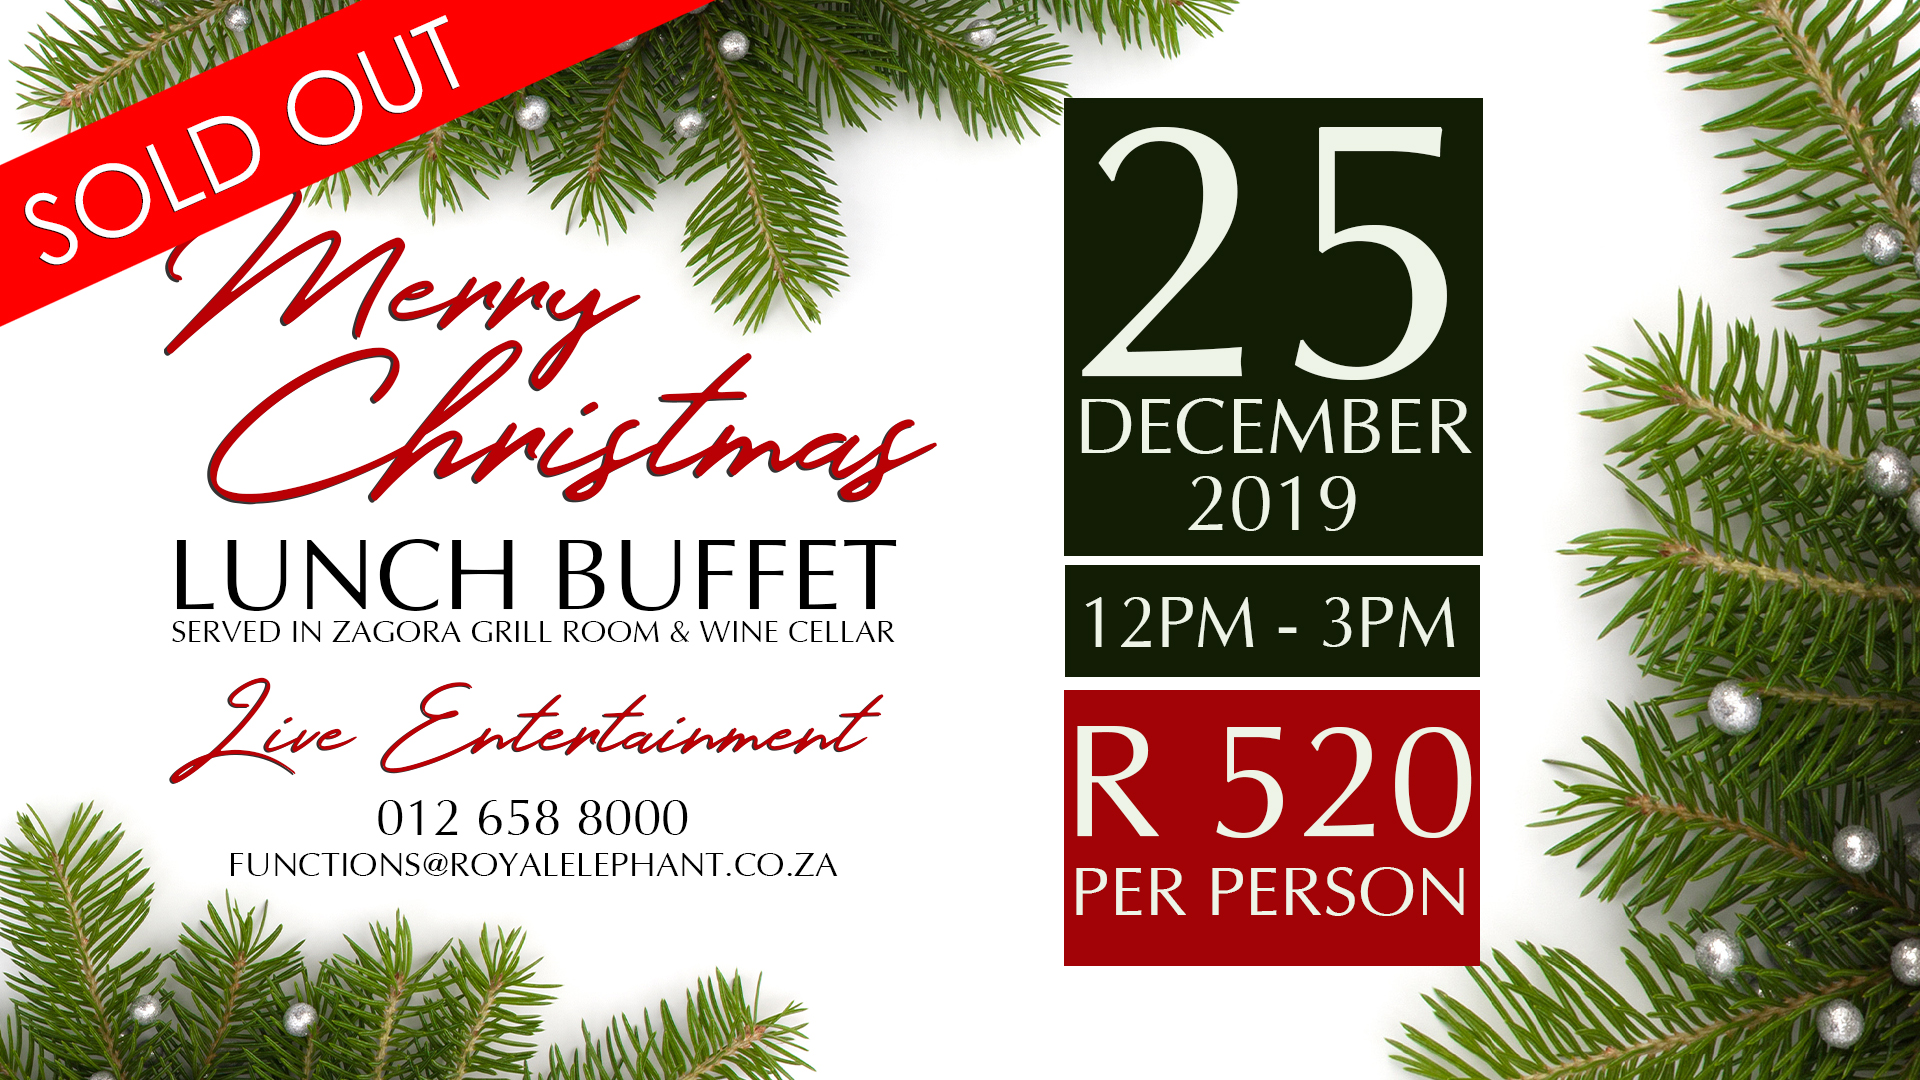 Christmas Lunch Buffet – 25 December 2019